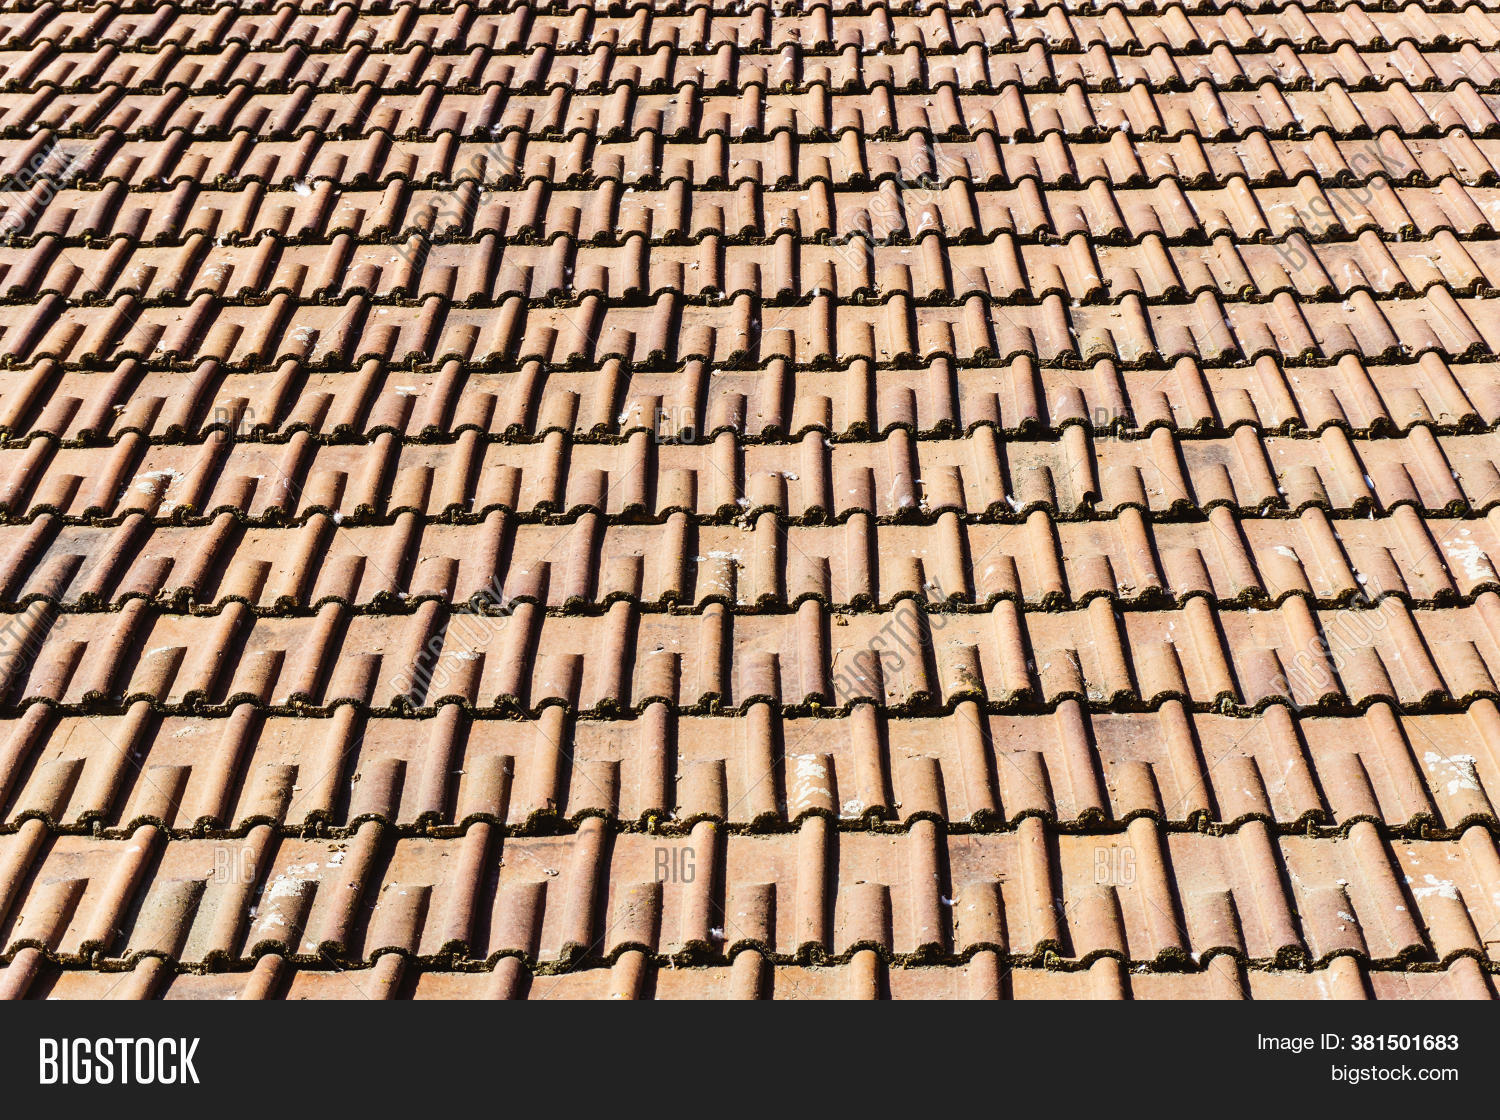 Red Ceramic Tile Roof Image Photo Free Trial Bigstock